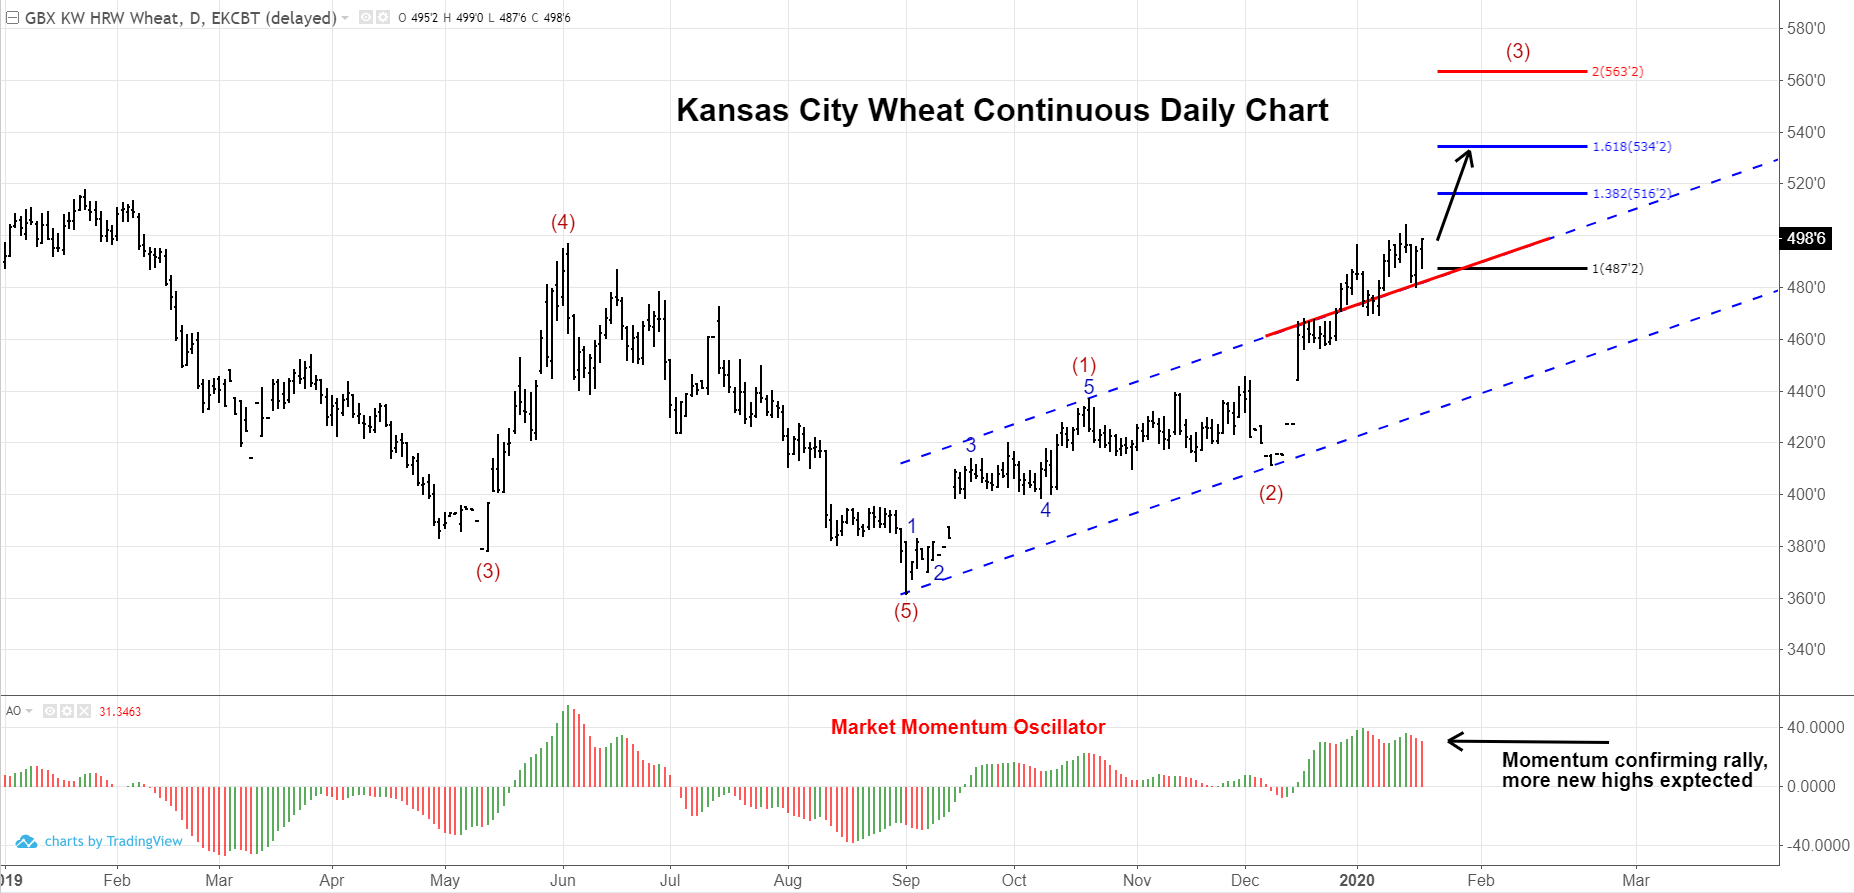 KC Wheat Futures Continuous